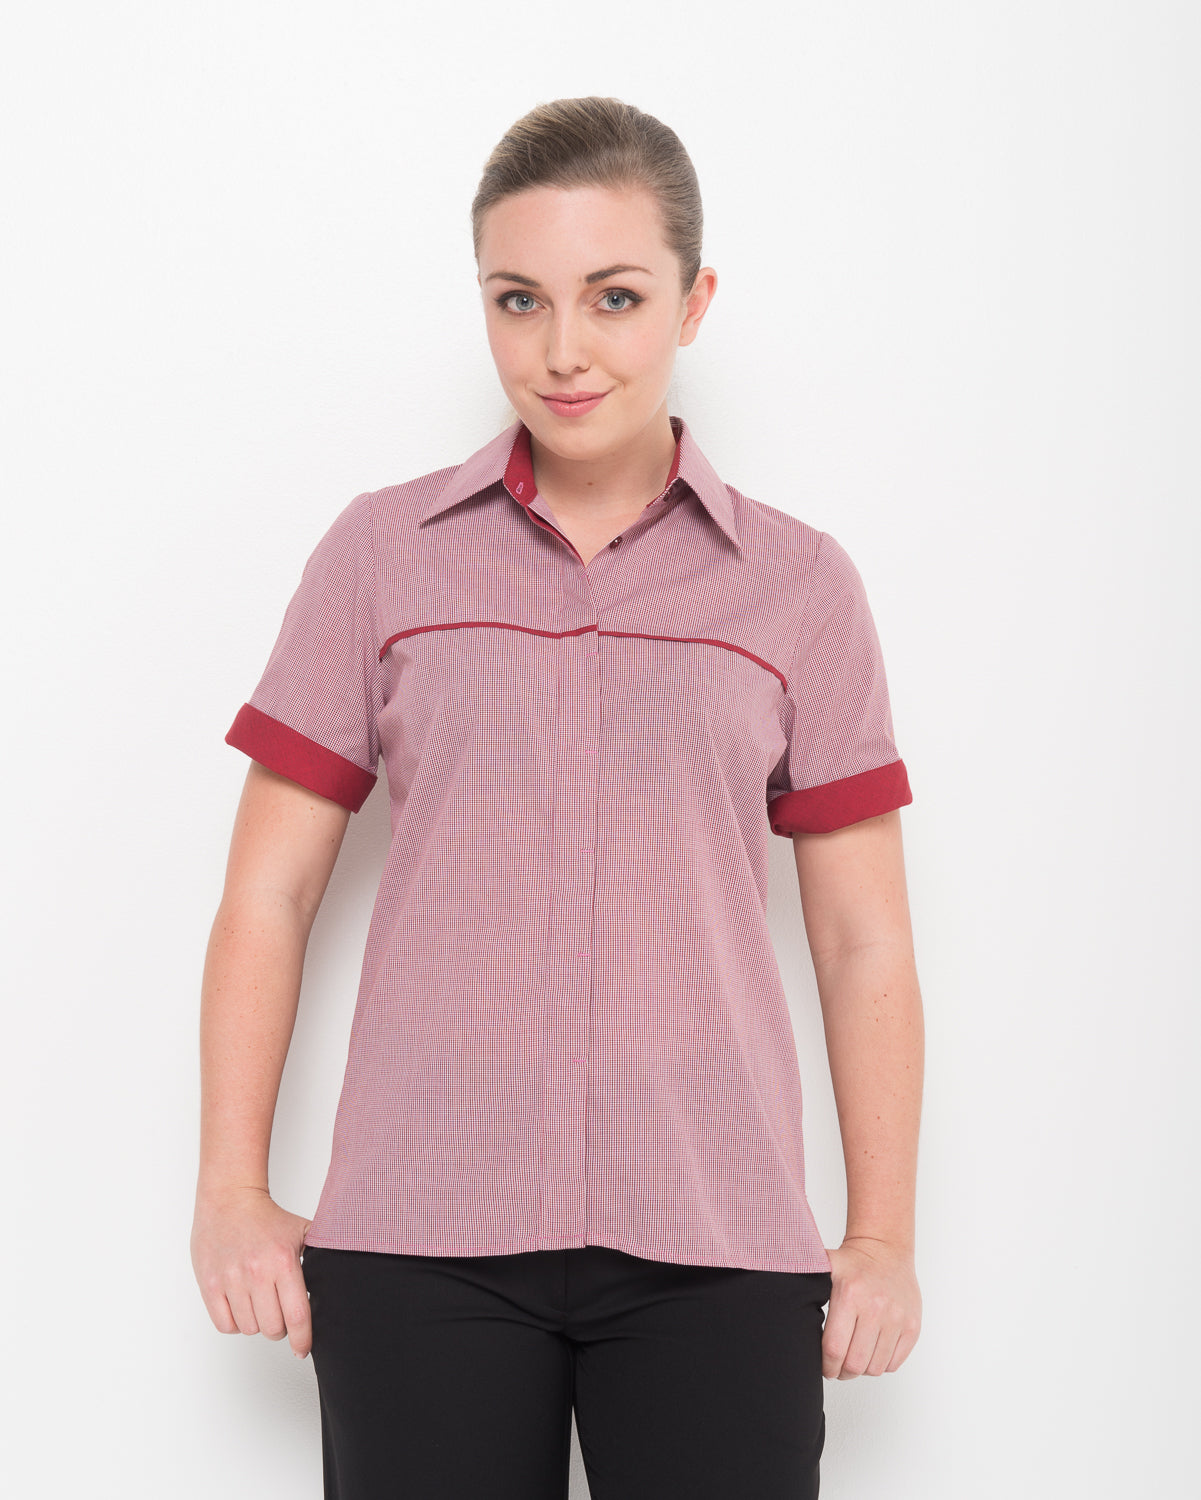 208-LO-CHE: 1/2 sleeve contrast pipping shirt